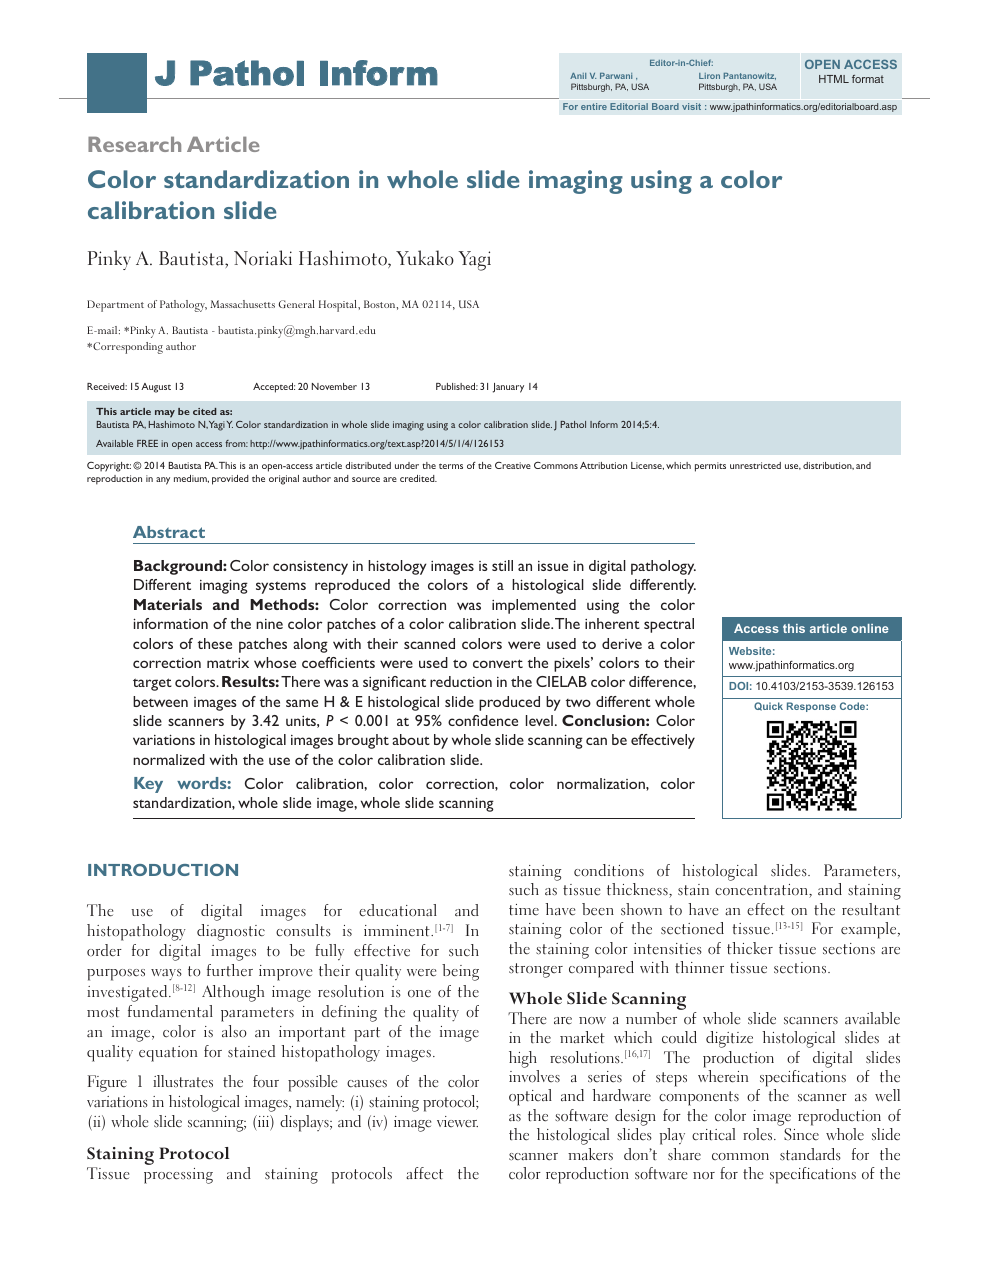 Color standardization in whole slide imaging using a color